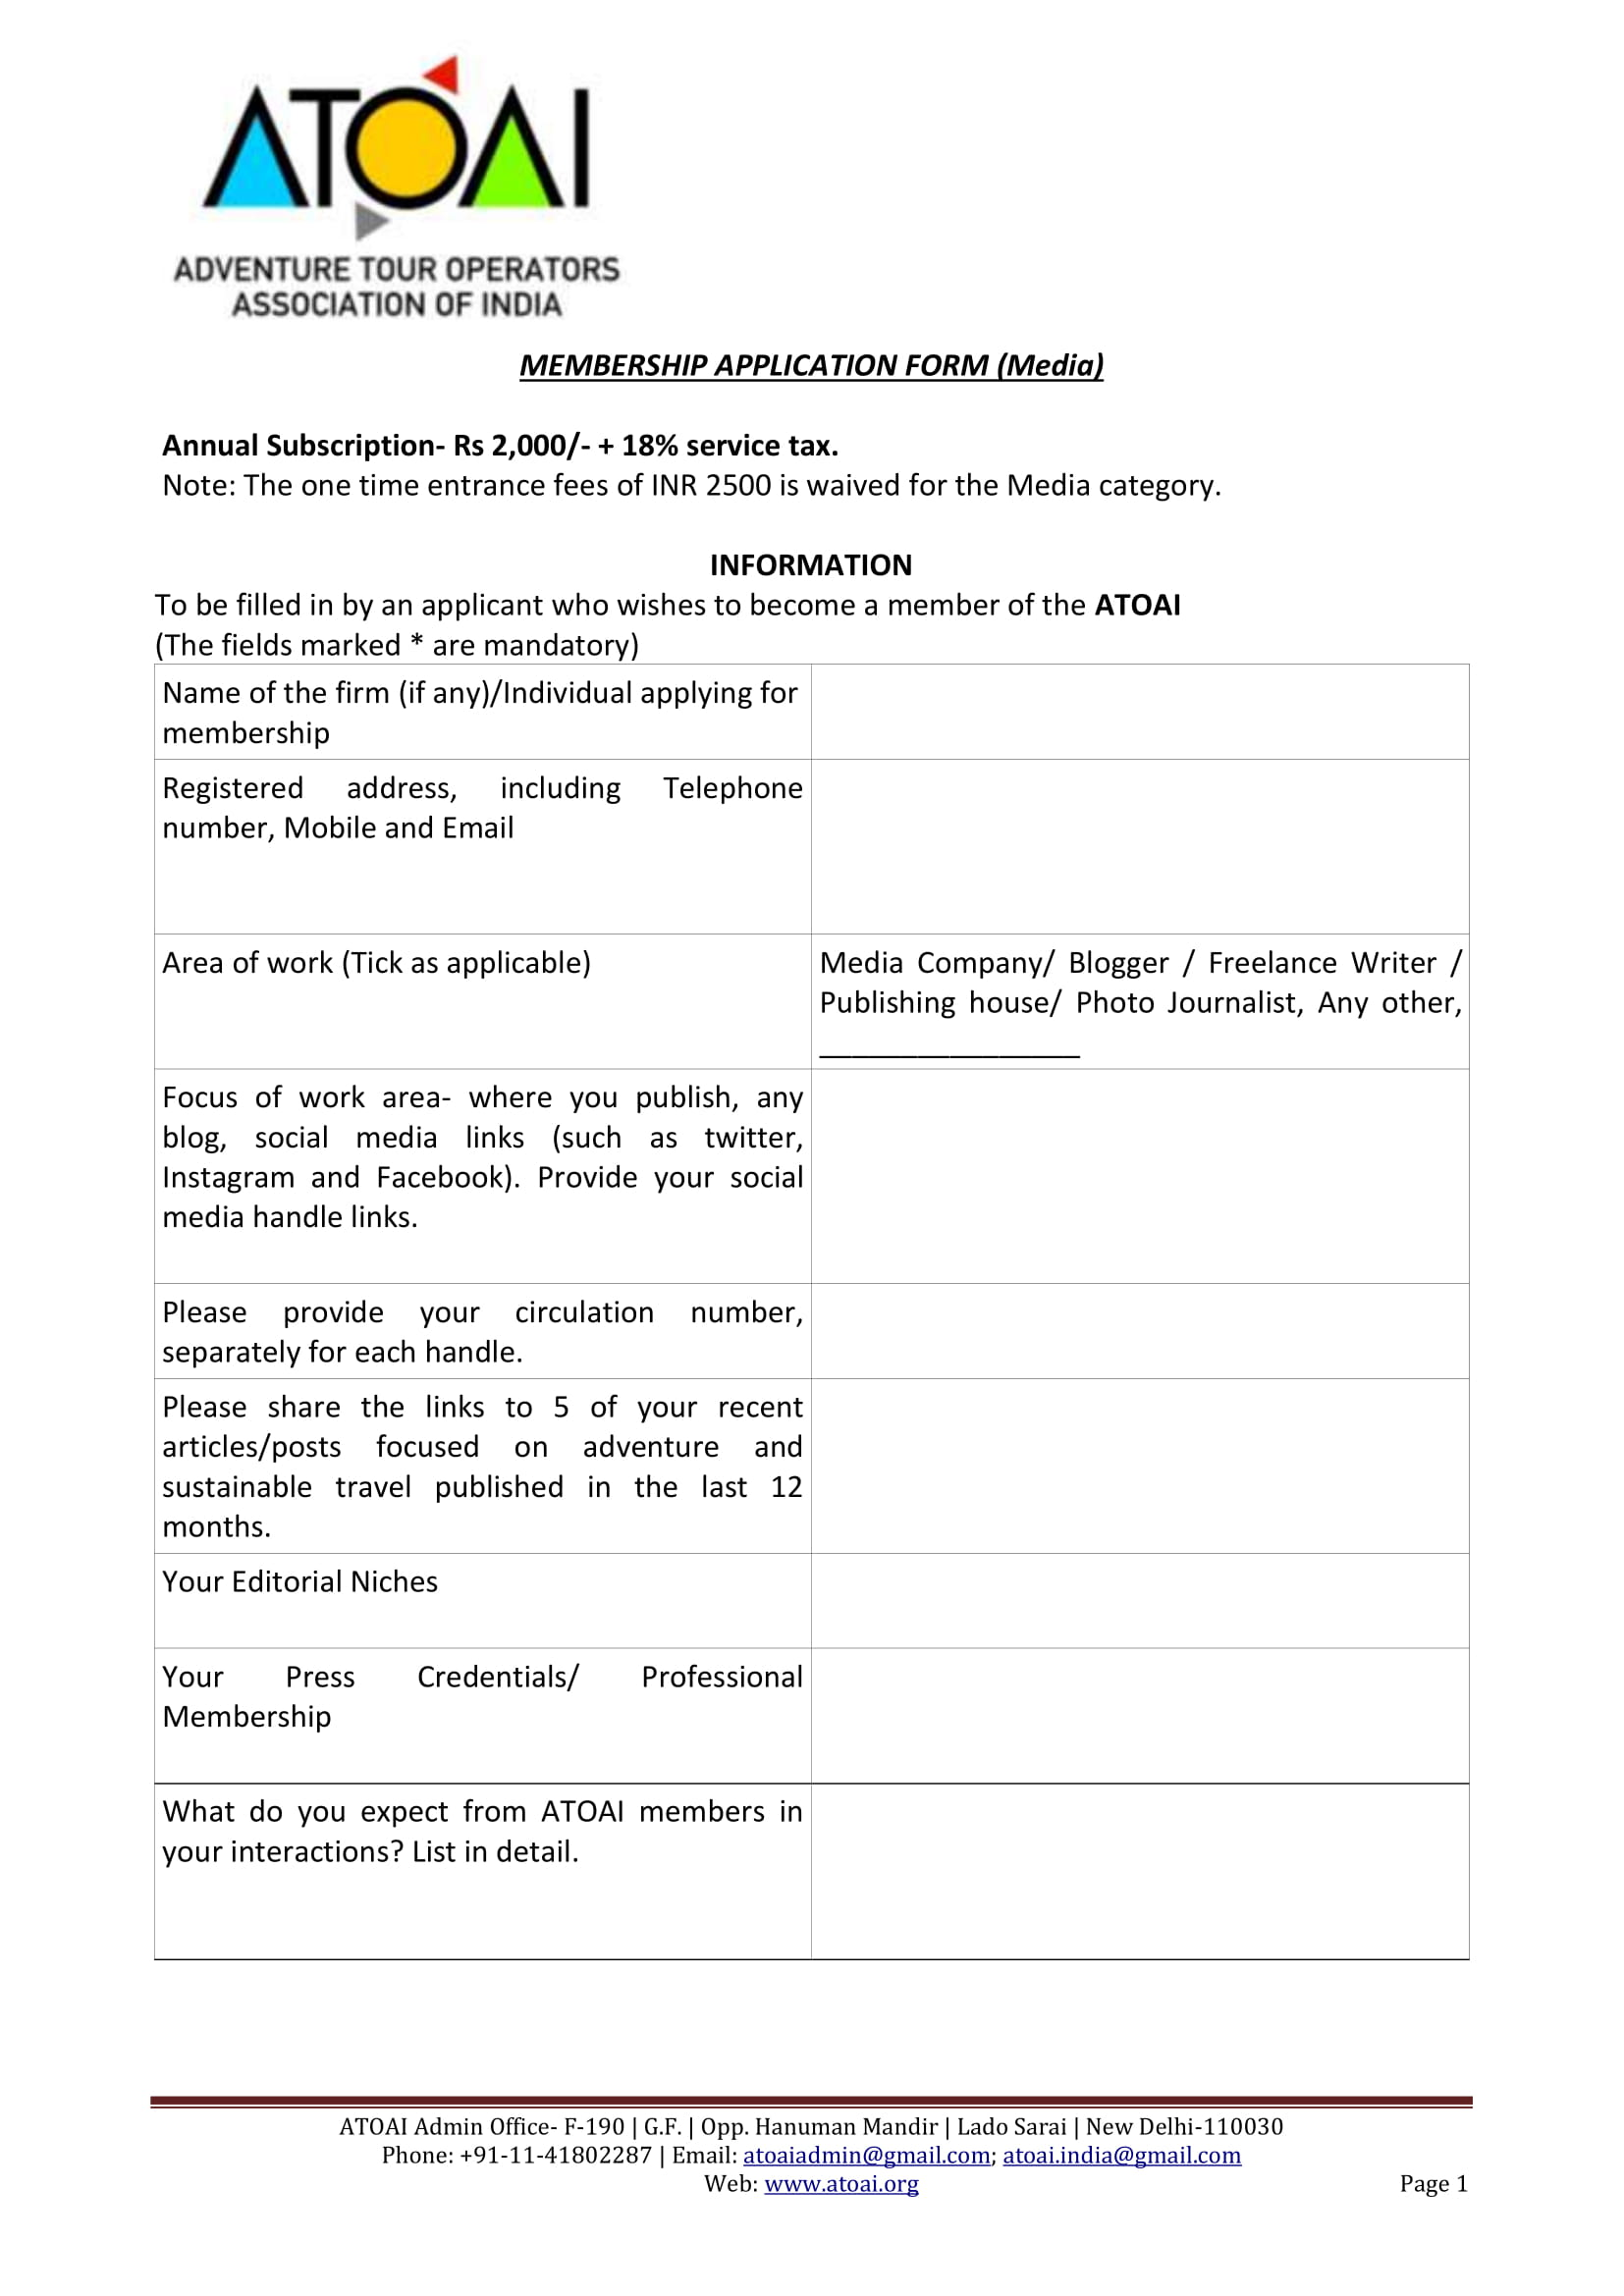 ATOAI - Media Member - Form-1